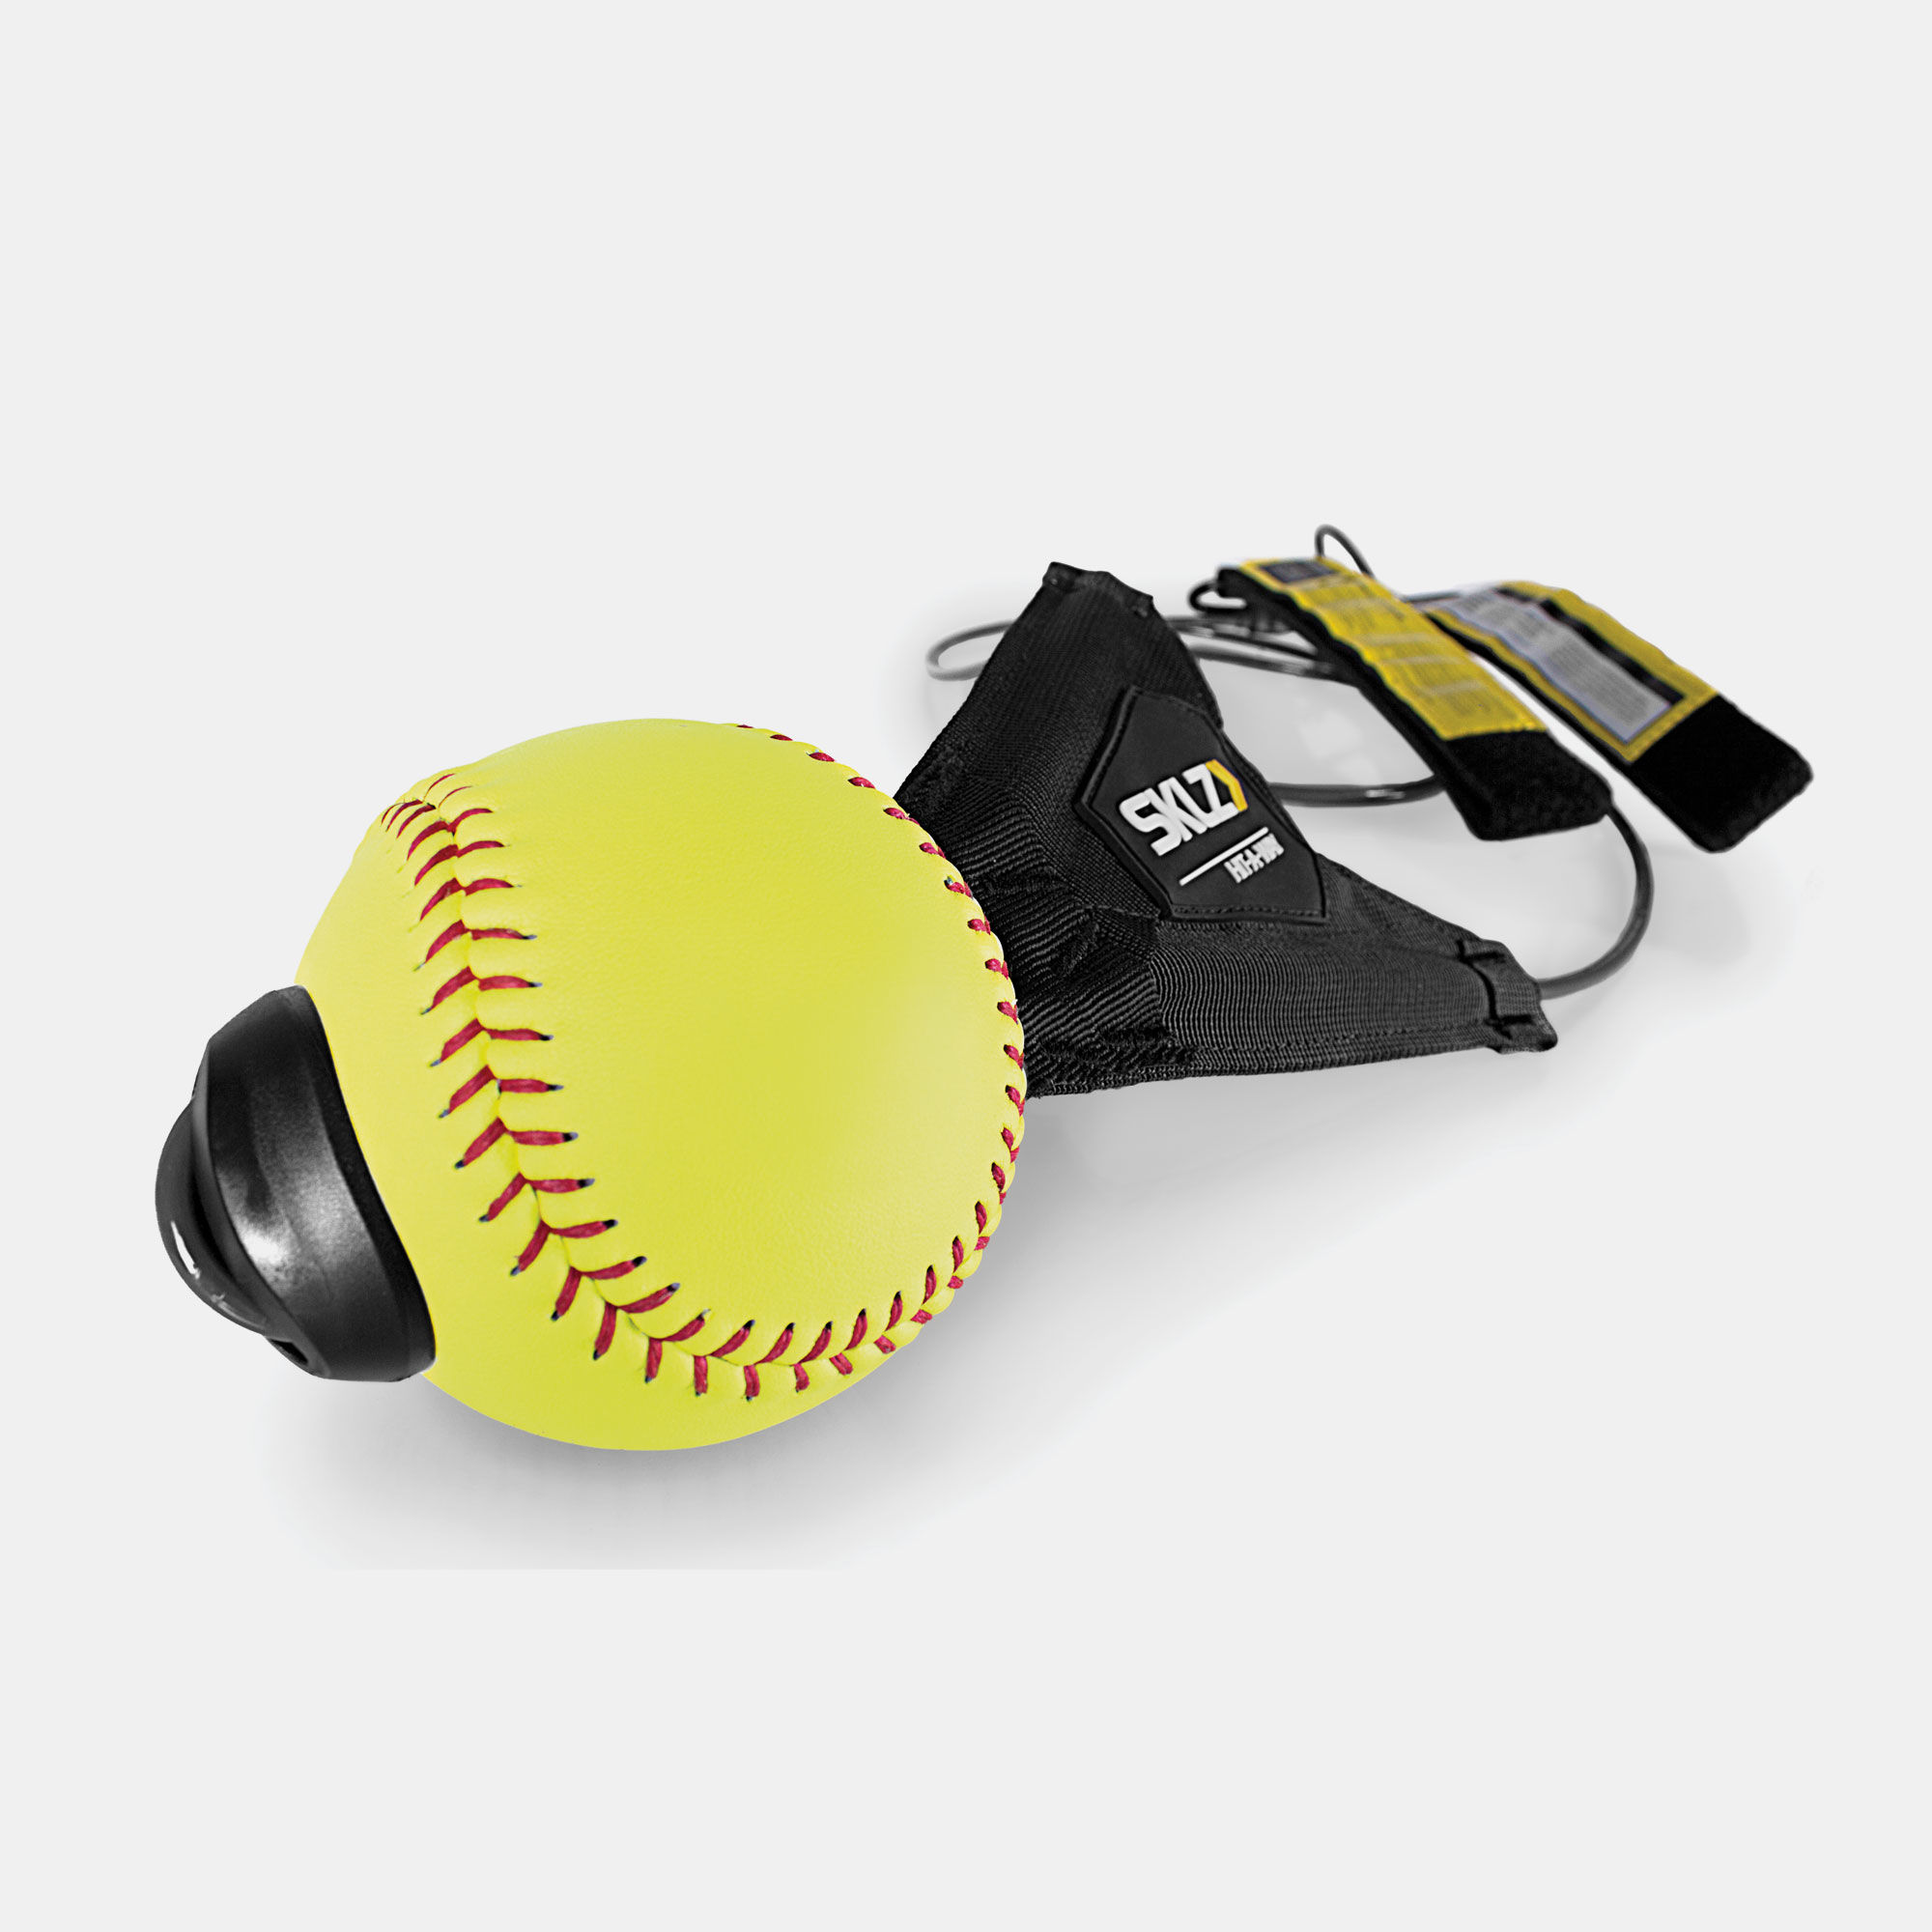 SKLZ Hit-A-Way Portable Swing Trainer for Softball